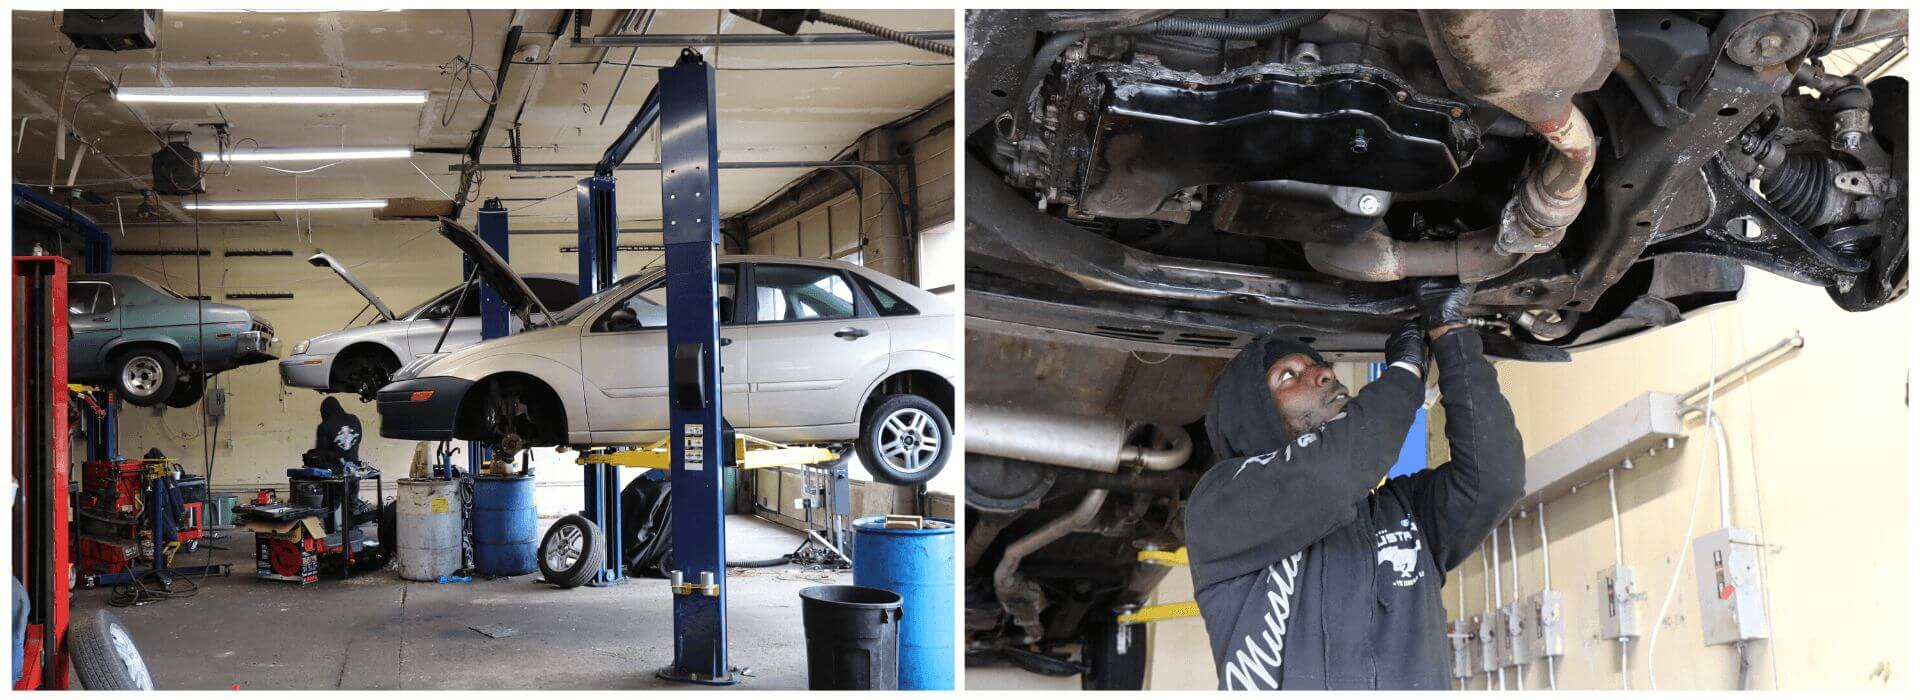 Industry Trends in Automotive Repair That Promise Accelerated Career Growth